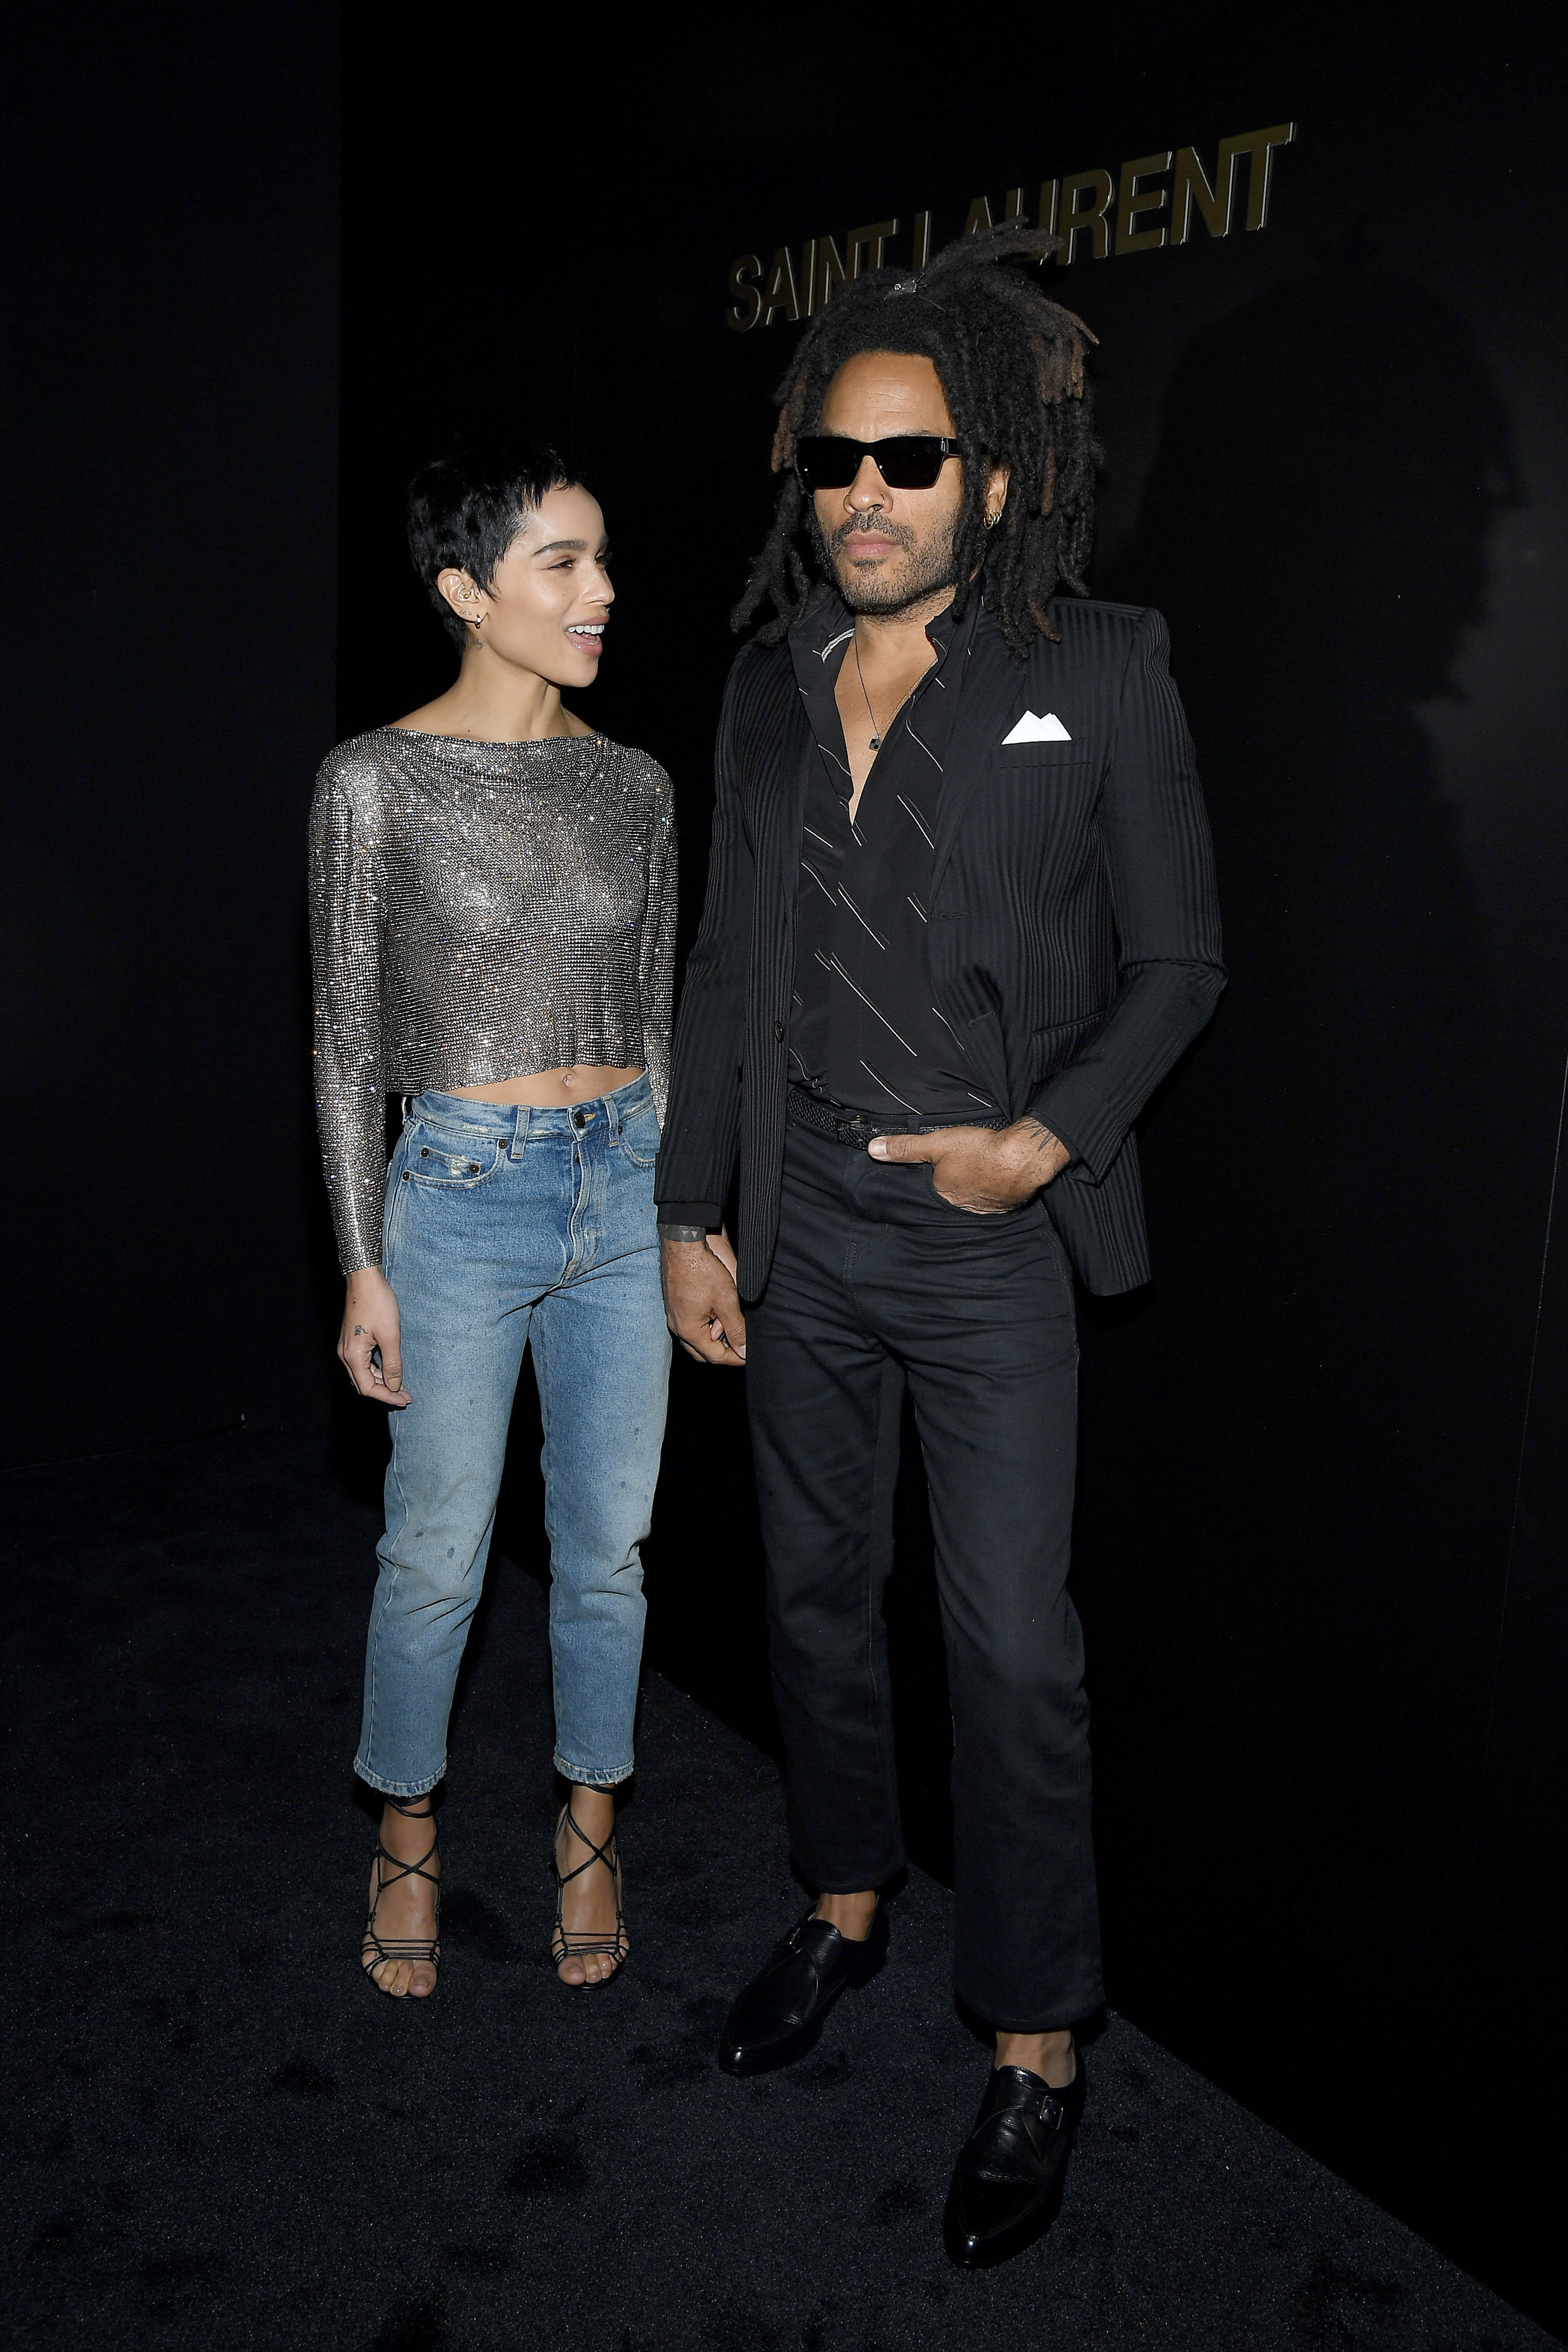 Zoe and Lenny Kravitz pose, she wears jeans a sparkling top strappy heels